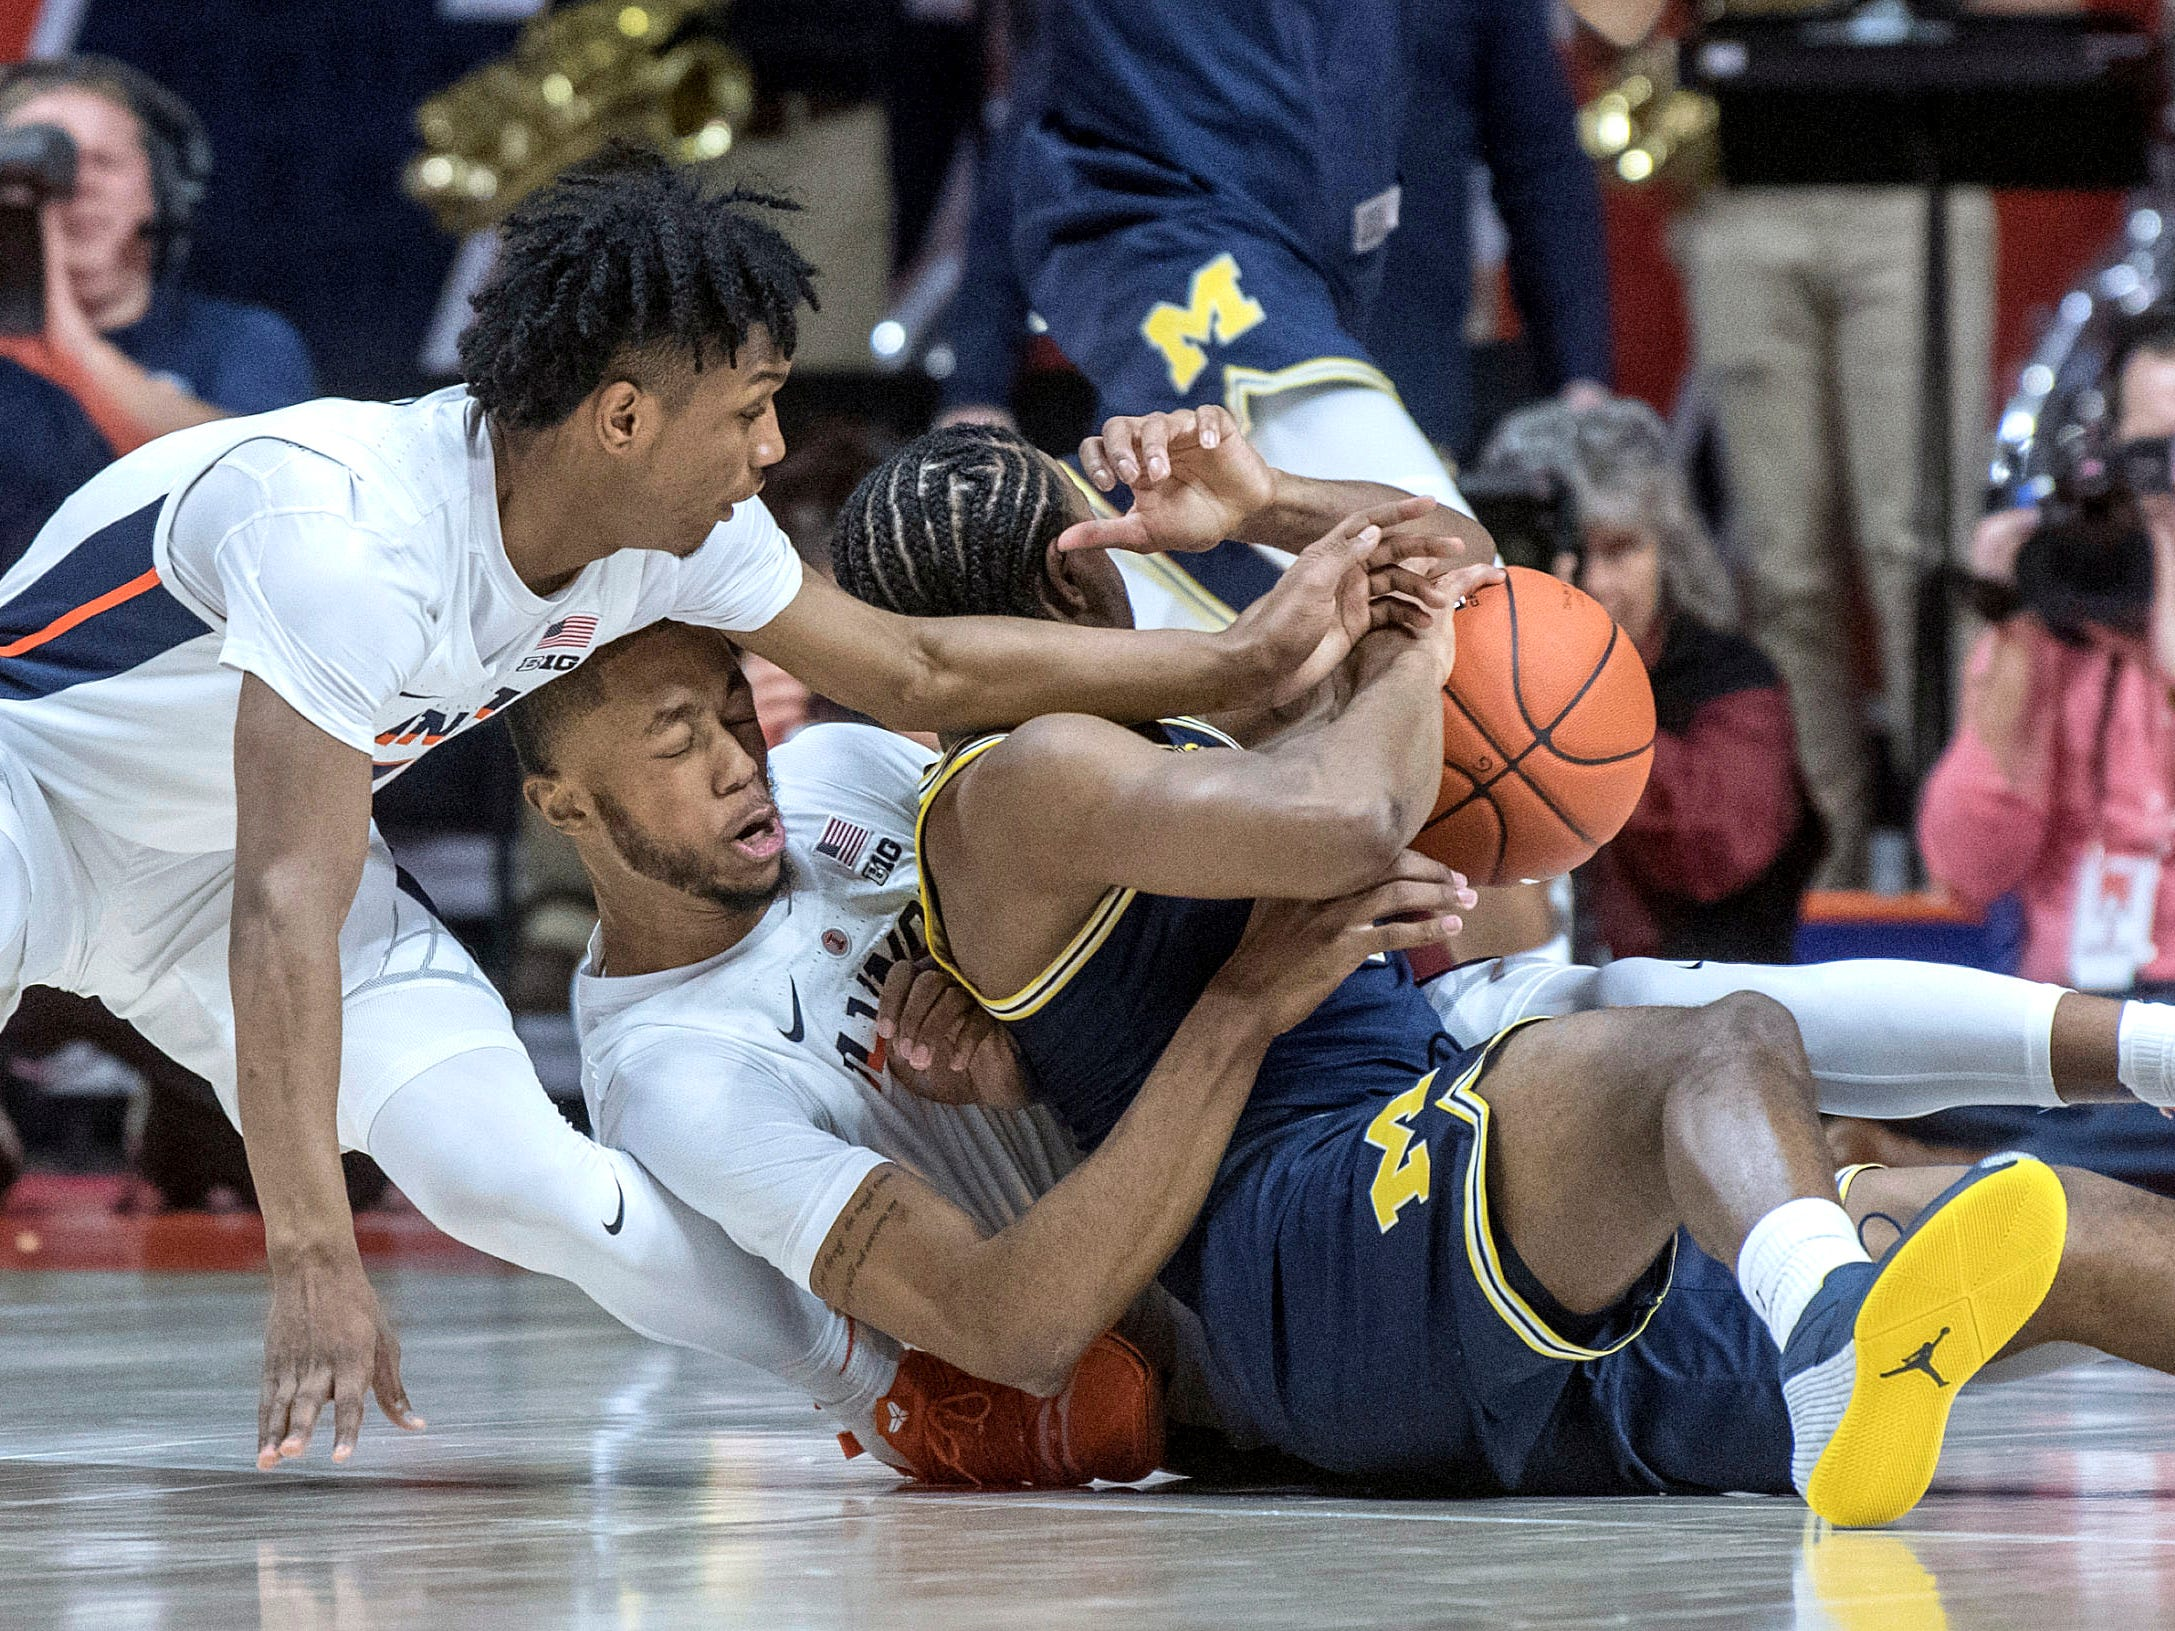 Illinois guards Trent Frazier and Alan Griffin battle for the ball with Michigan guard Zavier Simpson, right, during the first half of an NCAA college basketball game in Champaign, Ill., Wednesday, Jan. 10, 2019.